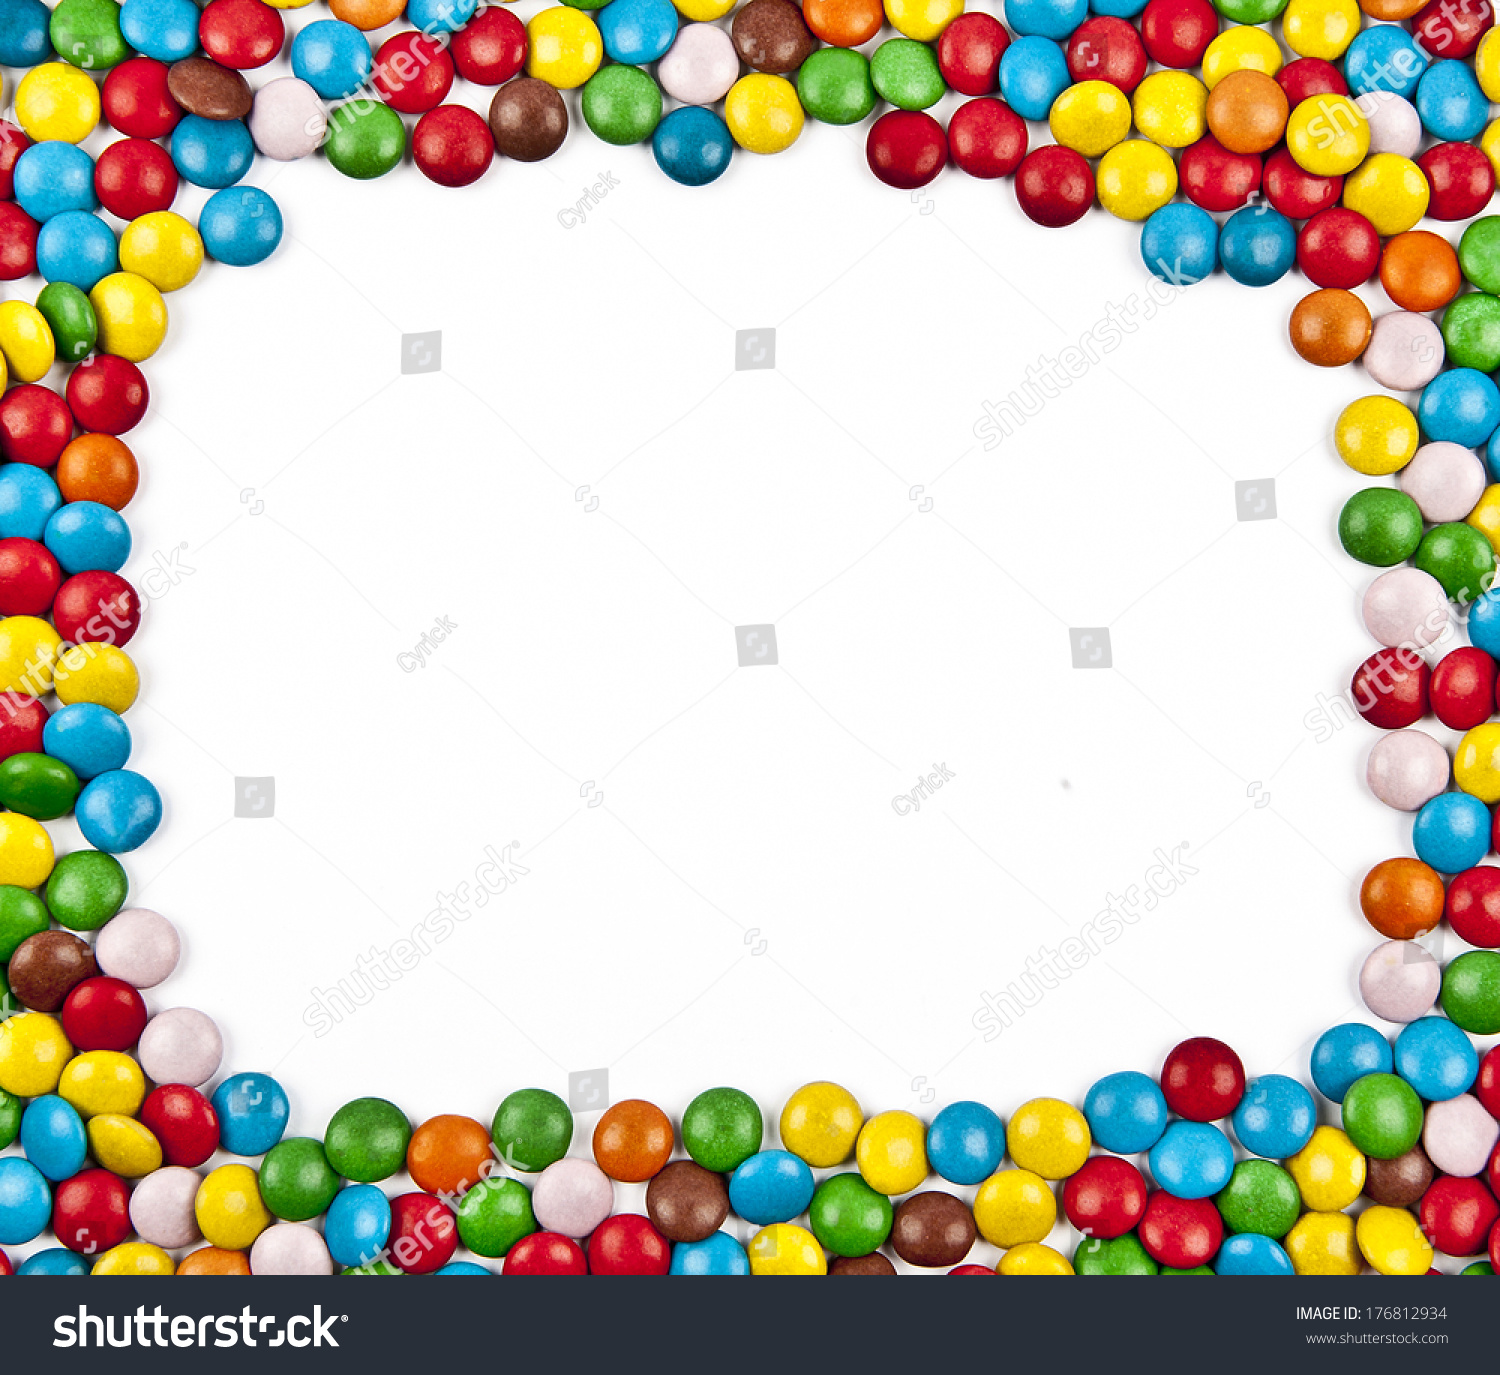 Chocolate coated candy chocolate pattern chocolate background - Frame Colorful Candy On White Background Stock Photo